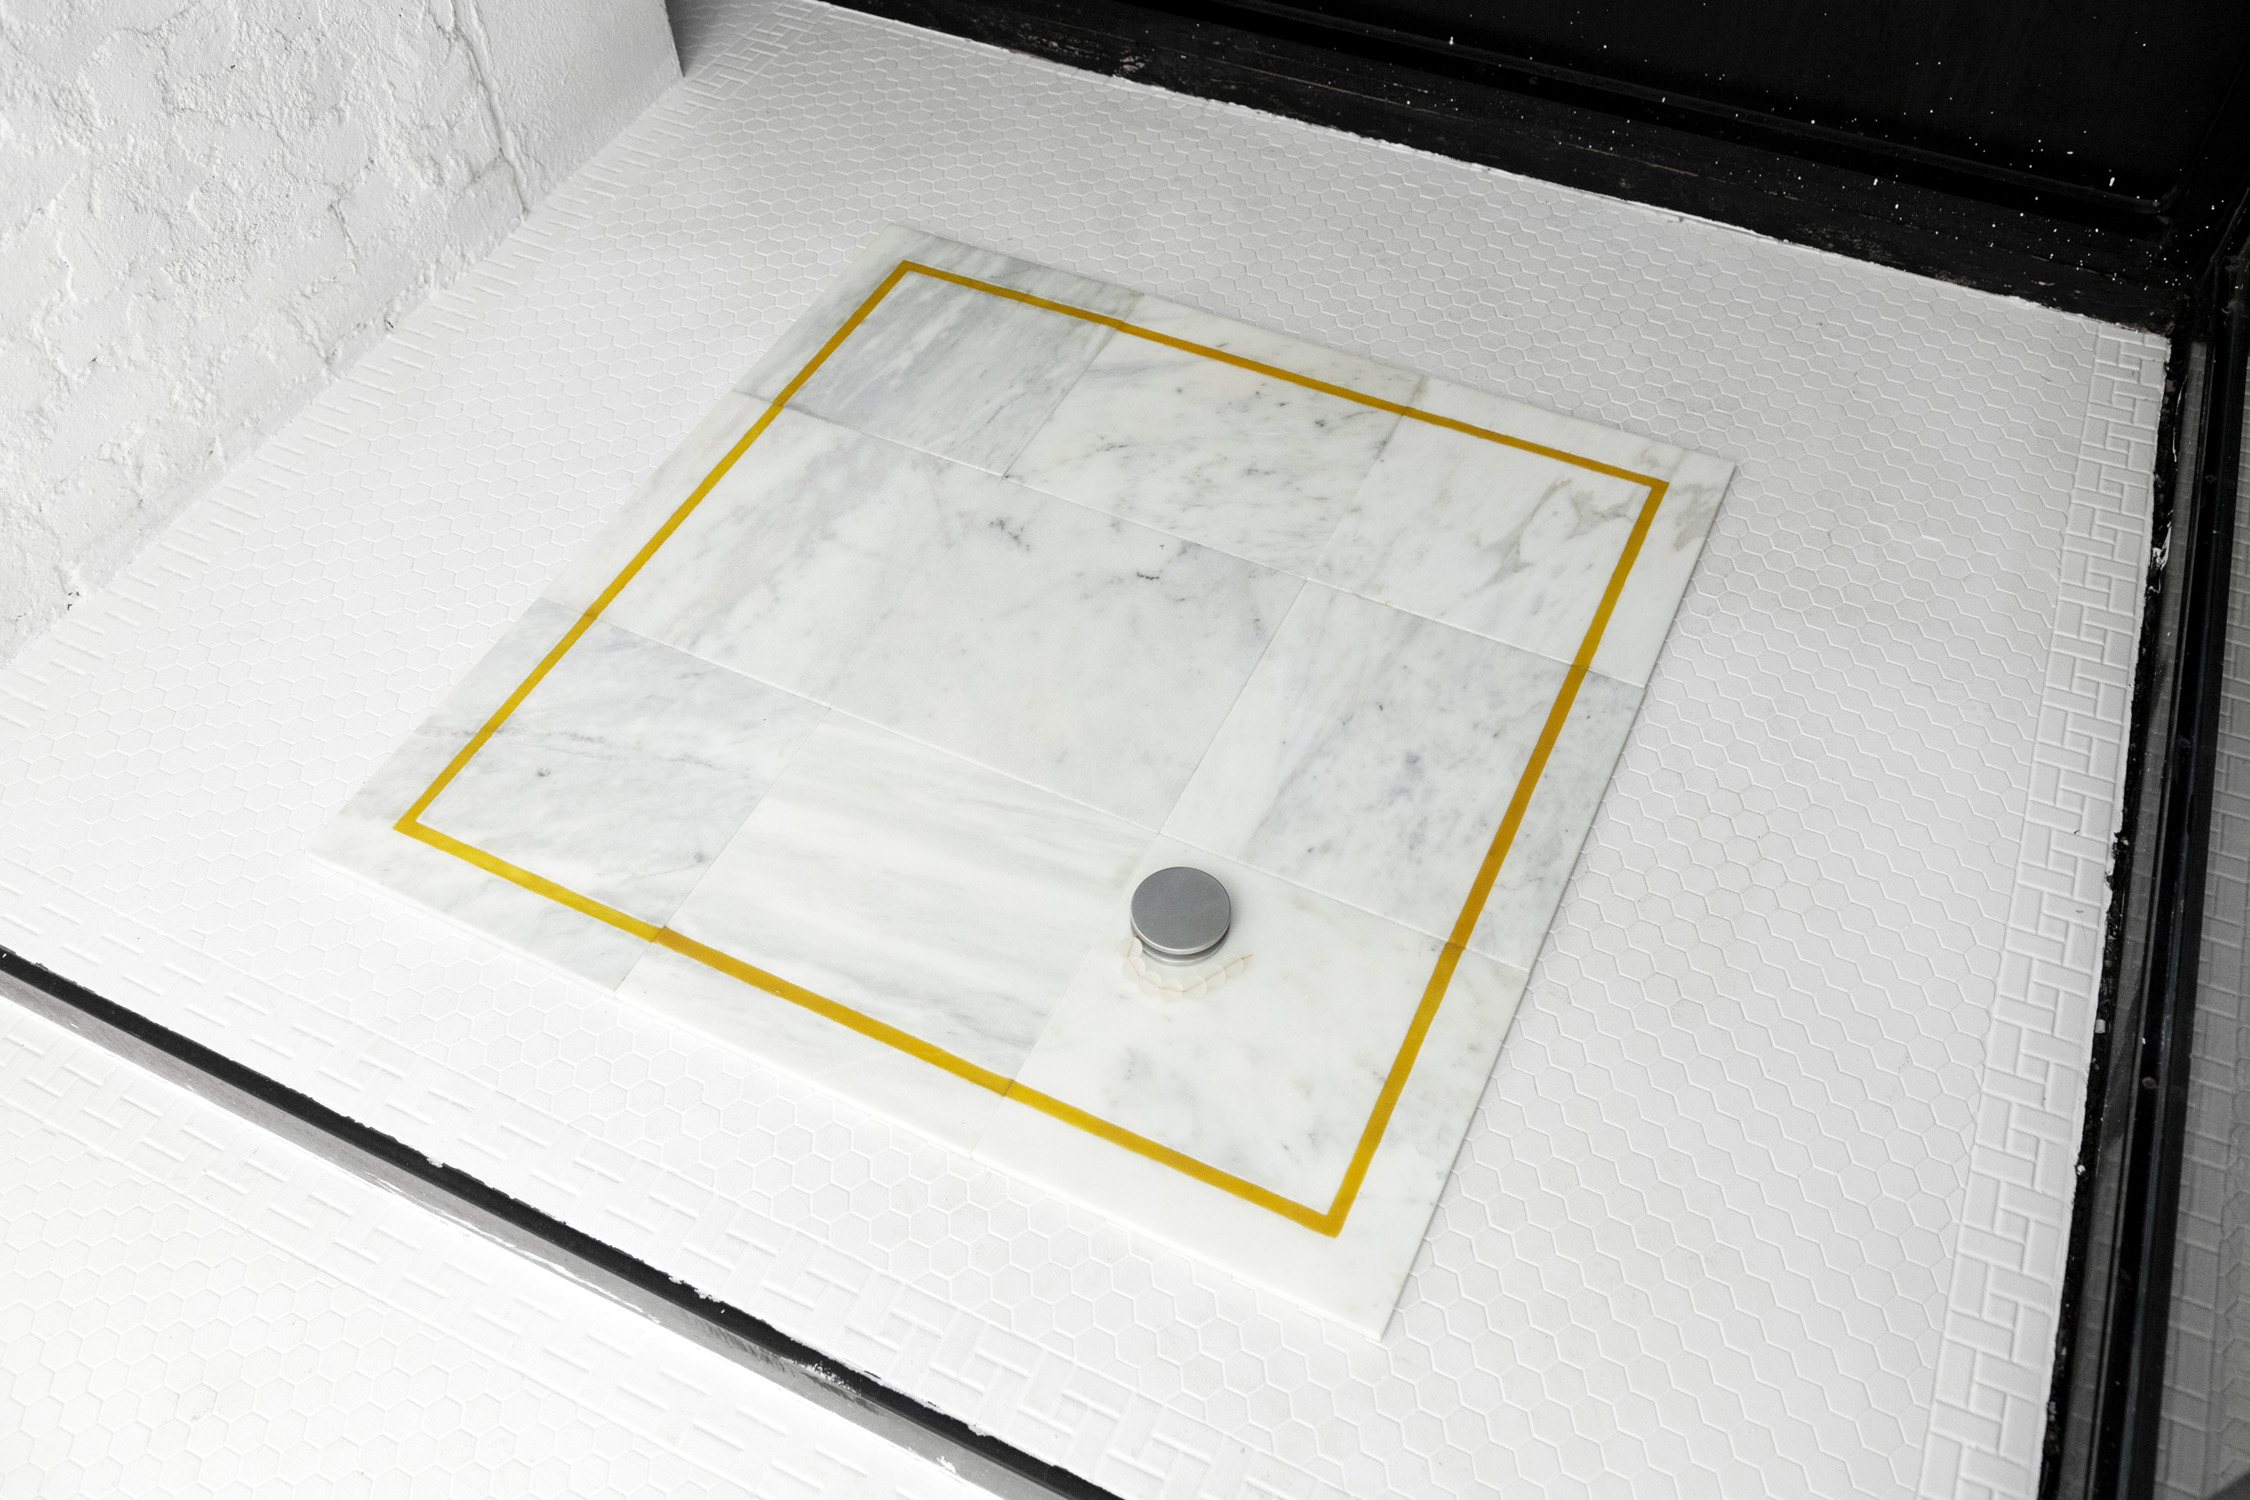 """""""Marble on Marble""""performance  20mm duration. Carrara marble tiles, rubber, aluminum tools, glass beads 2018"""